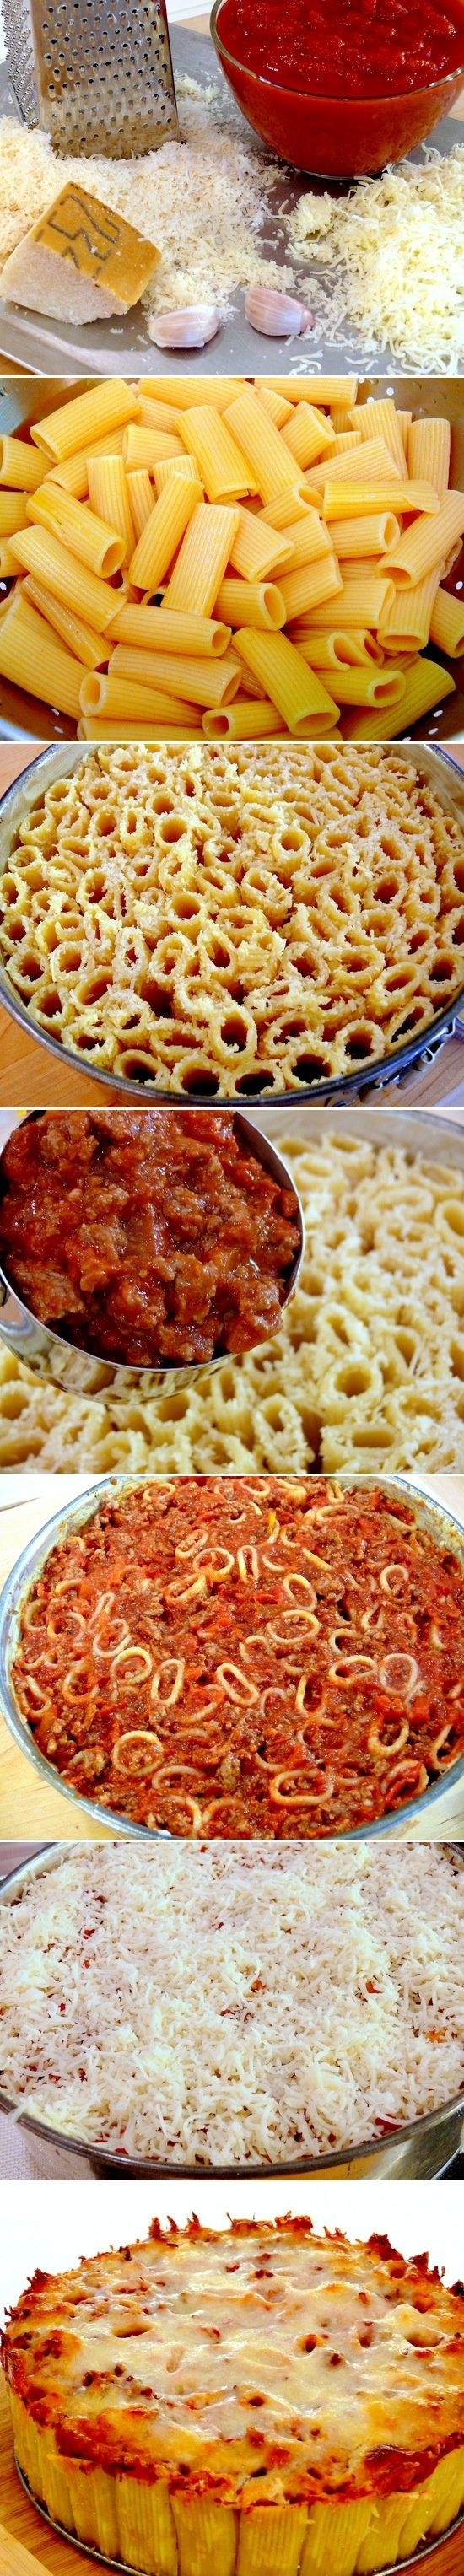 Pasta Pie - this looks so cool and tasty, too!